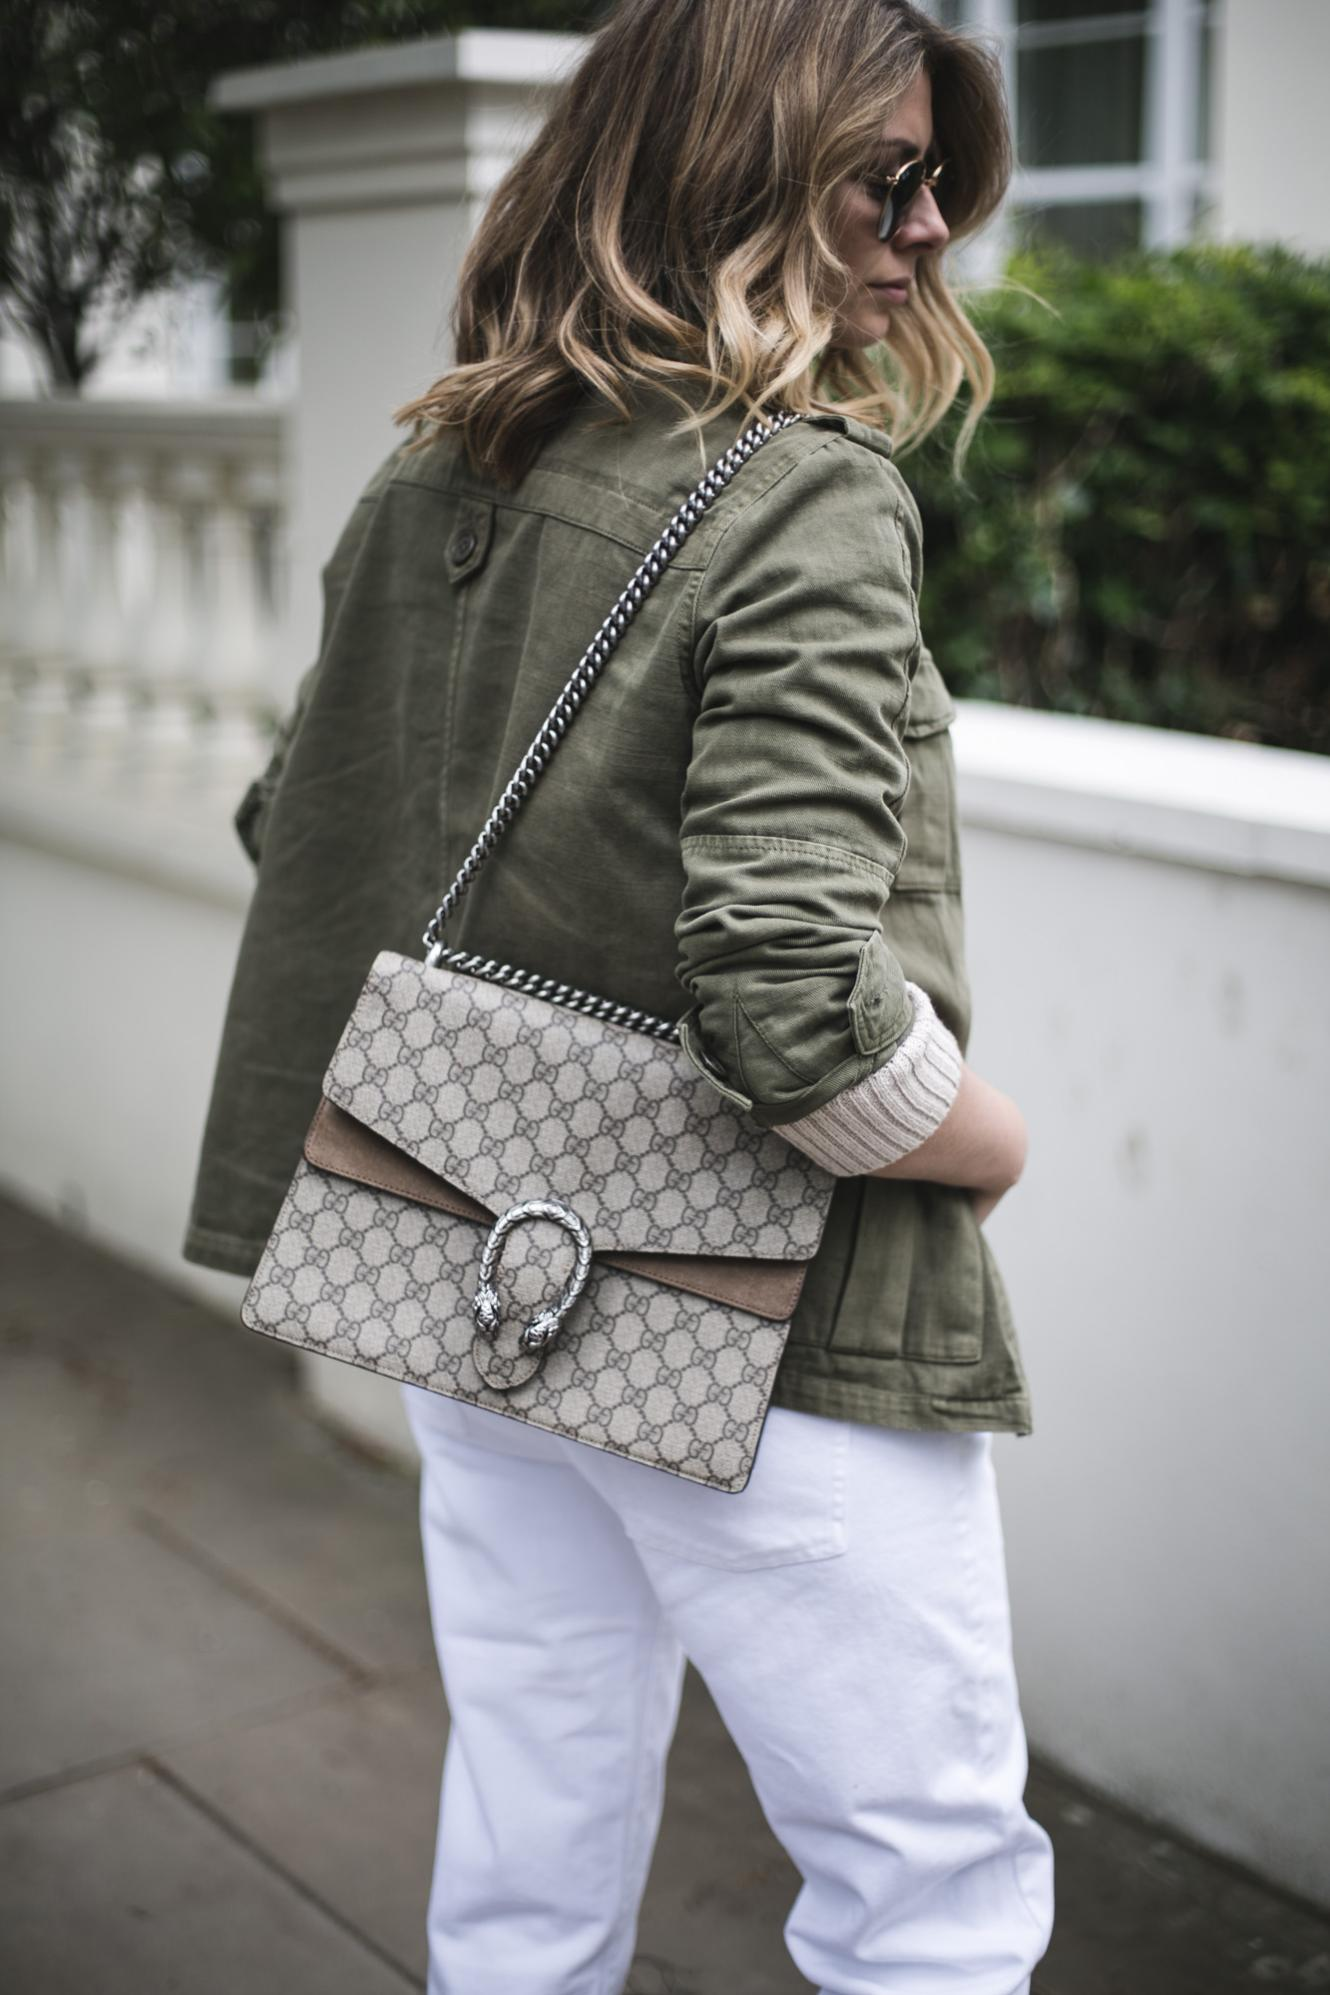 Khaki army jacket, Gucci Dionysus medium bag, white jeans